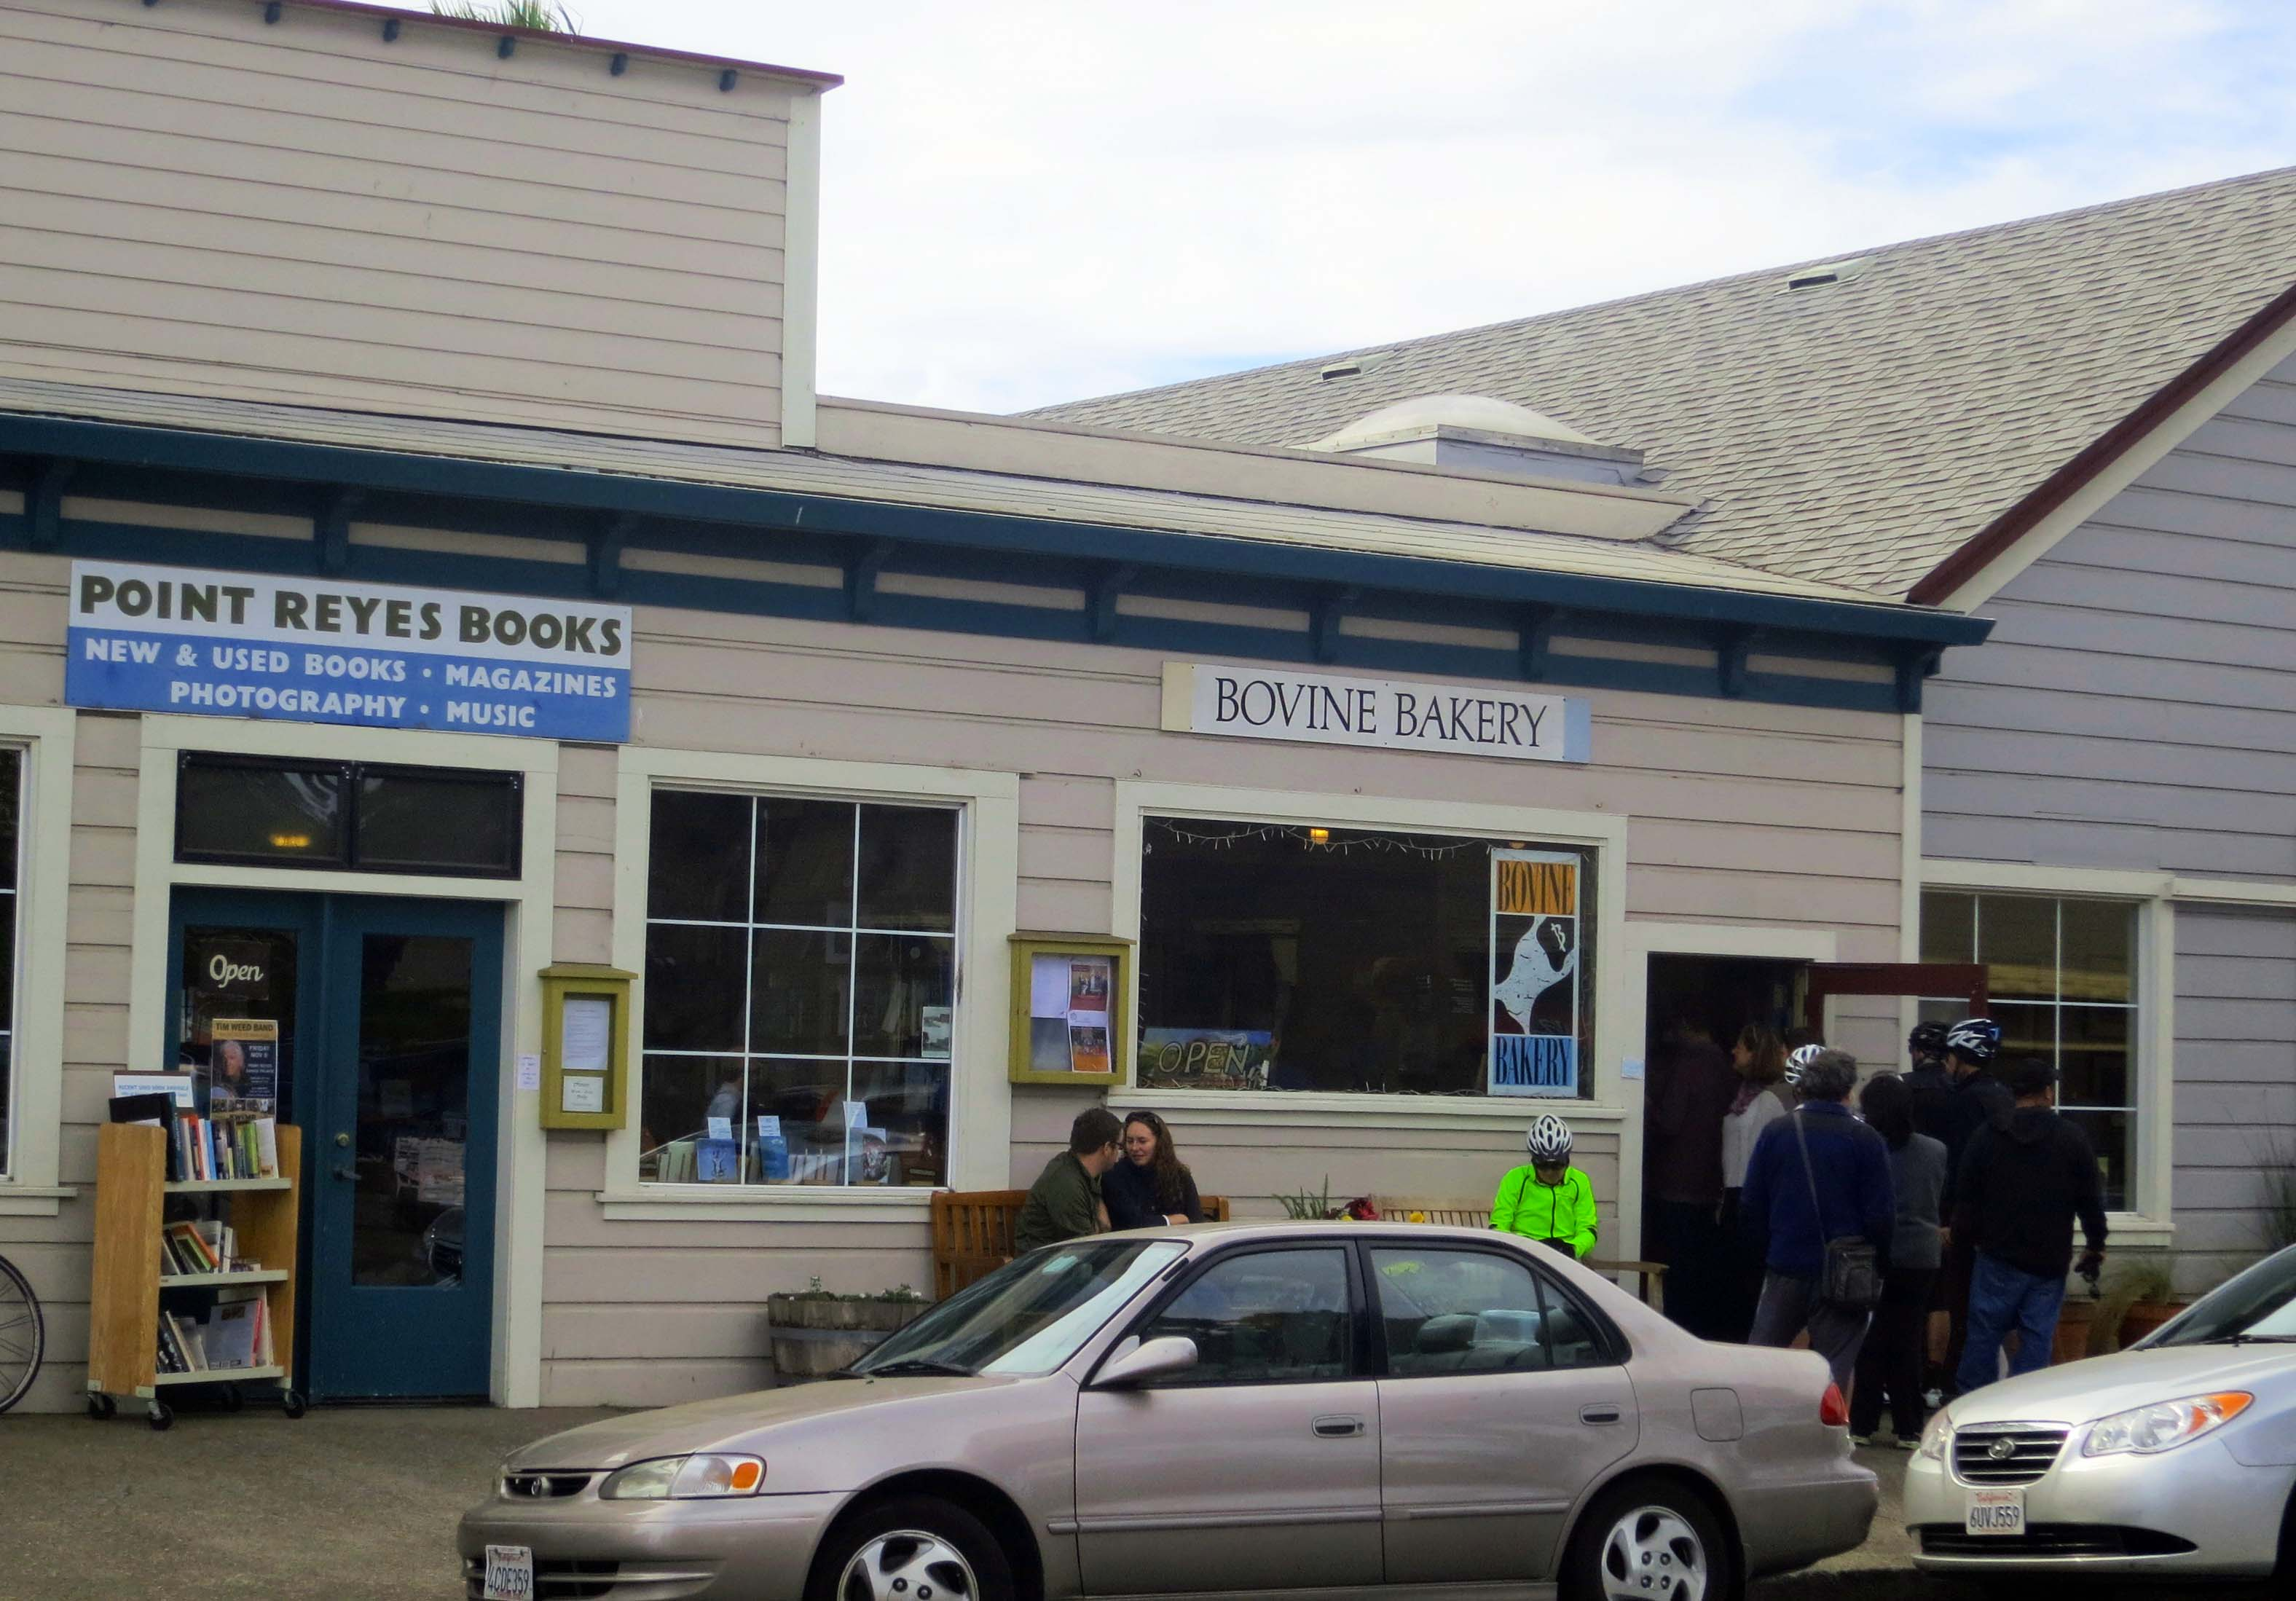 Photo of Point Reyes Books and Bovine Bakery in Point Reyes Station by Curtis Mekemson.